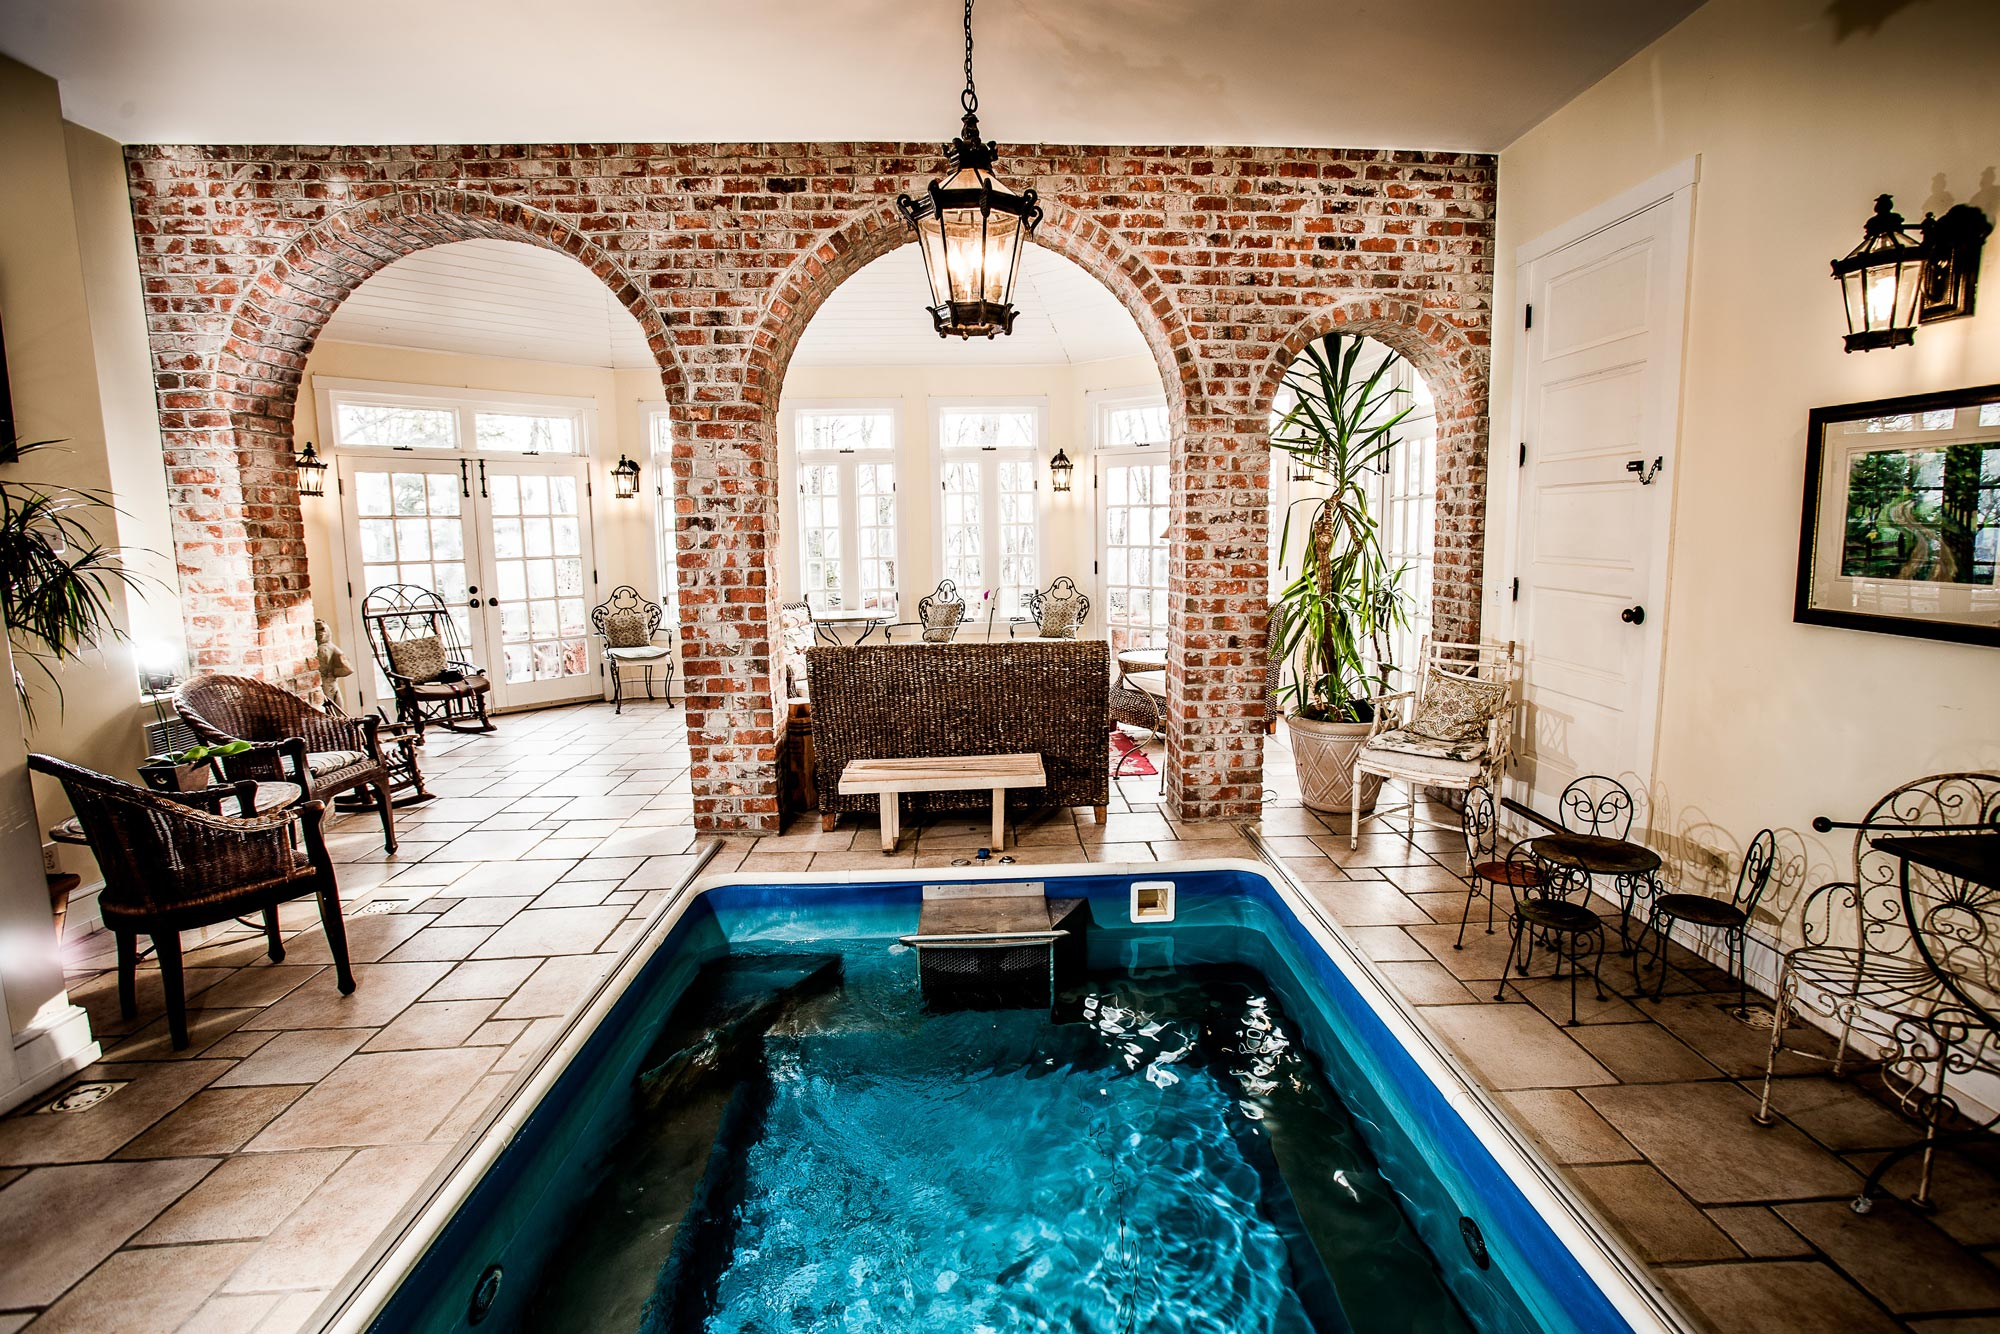 An endless swimming pool behind the sun room with cafe tables and chairs on either side of the pool.